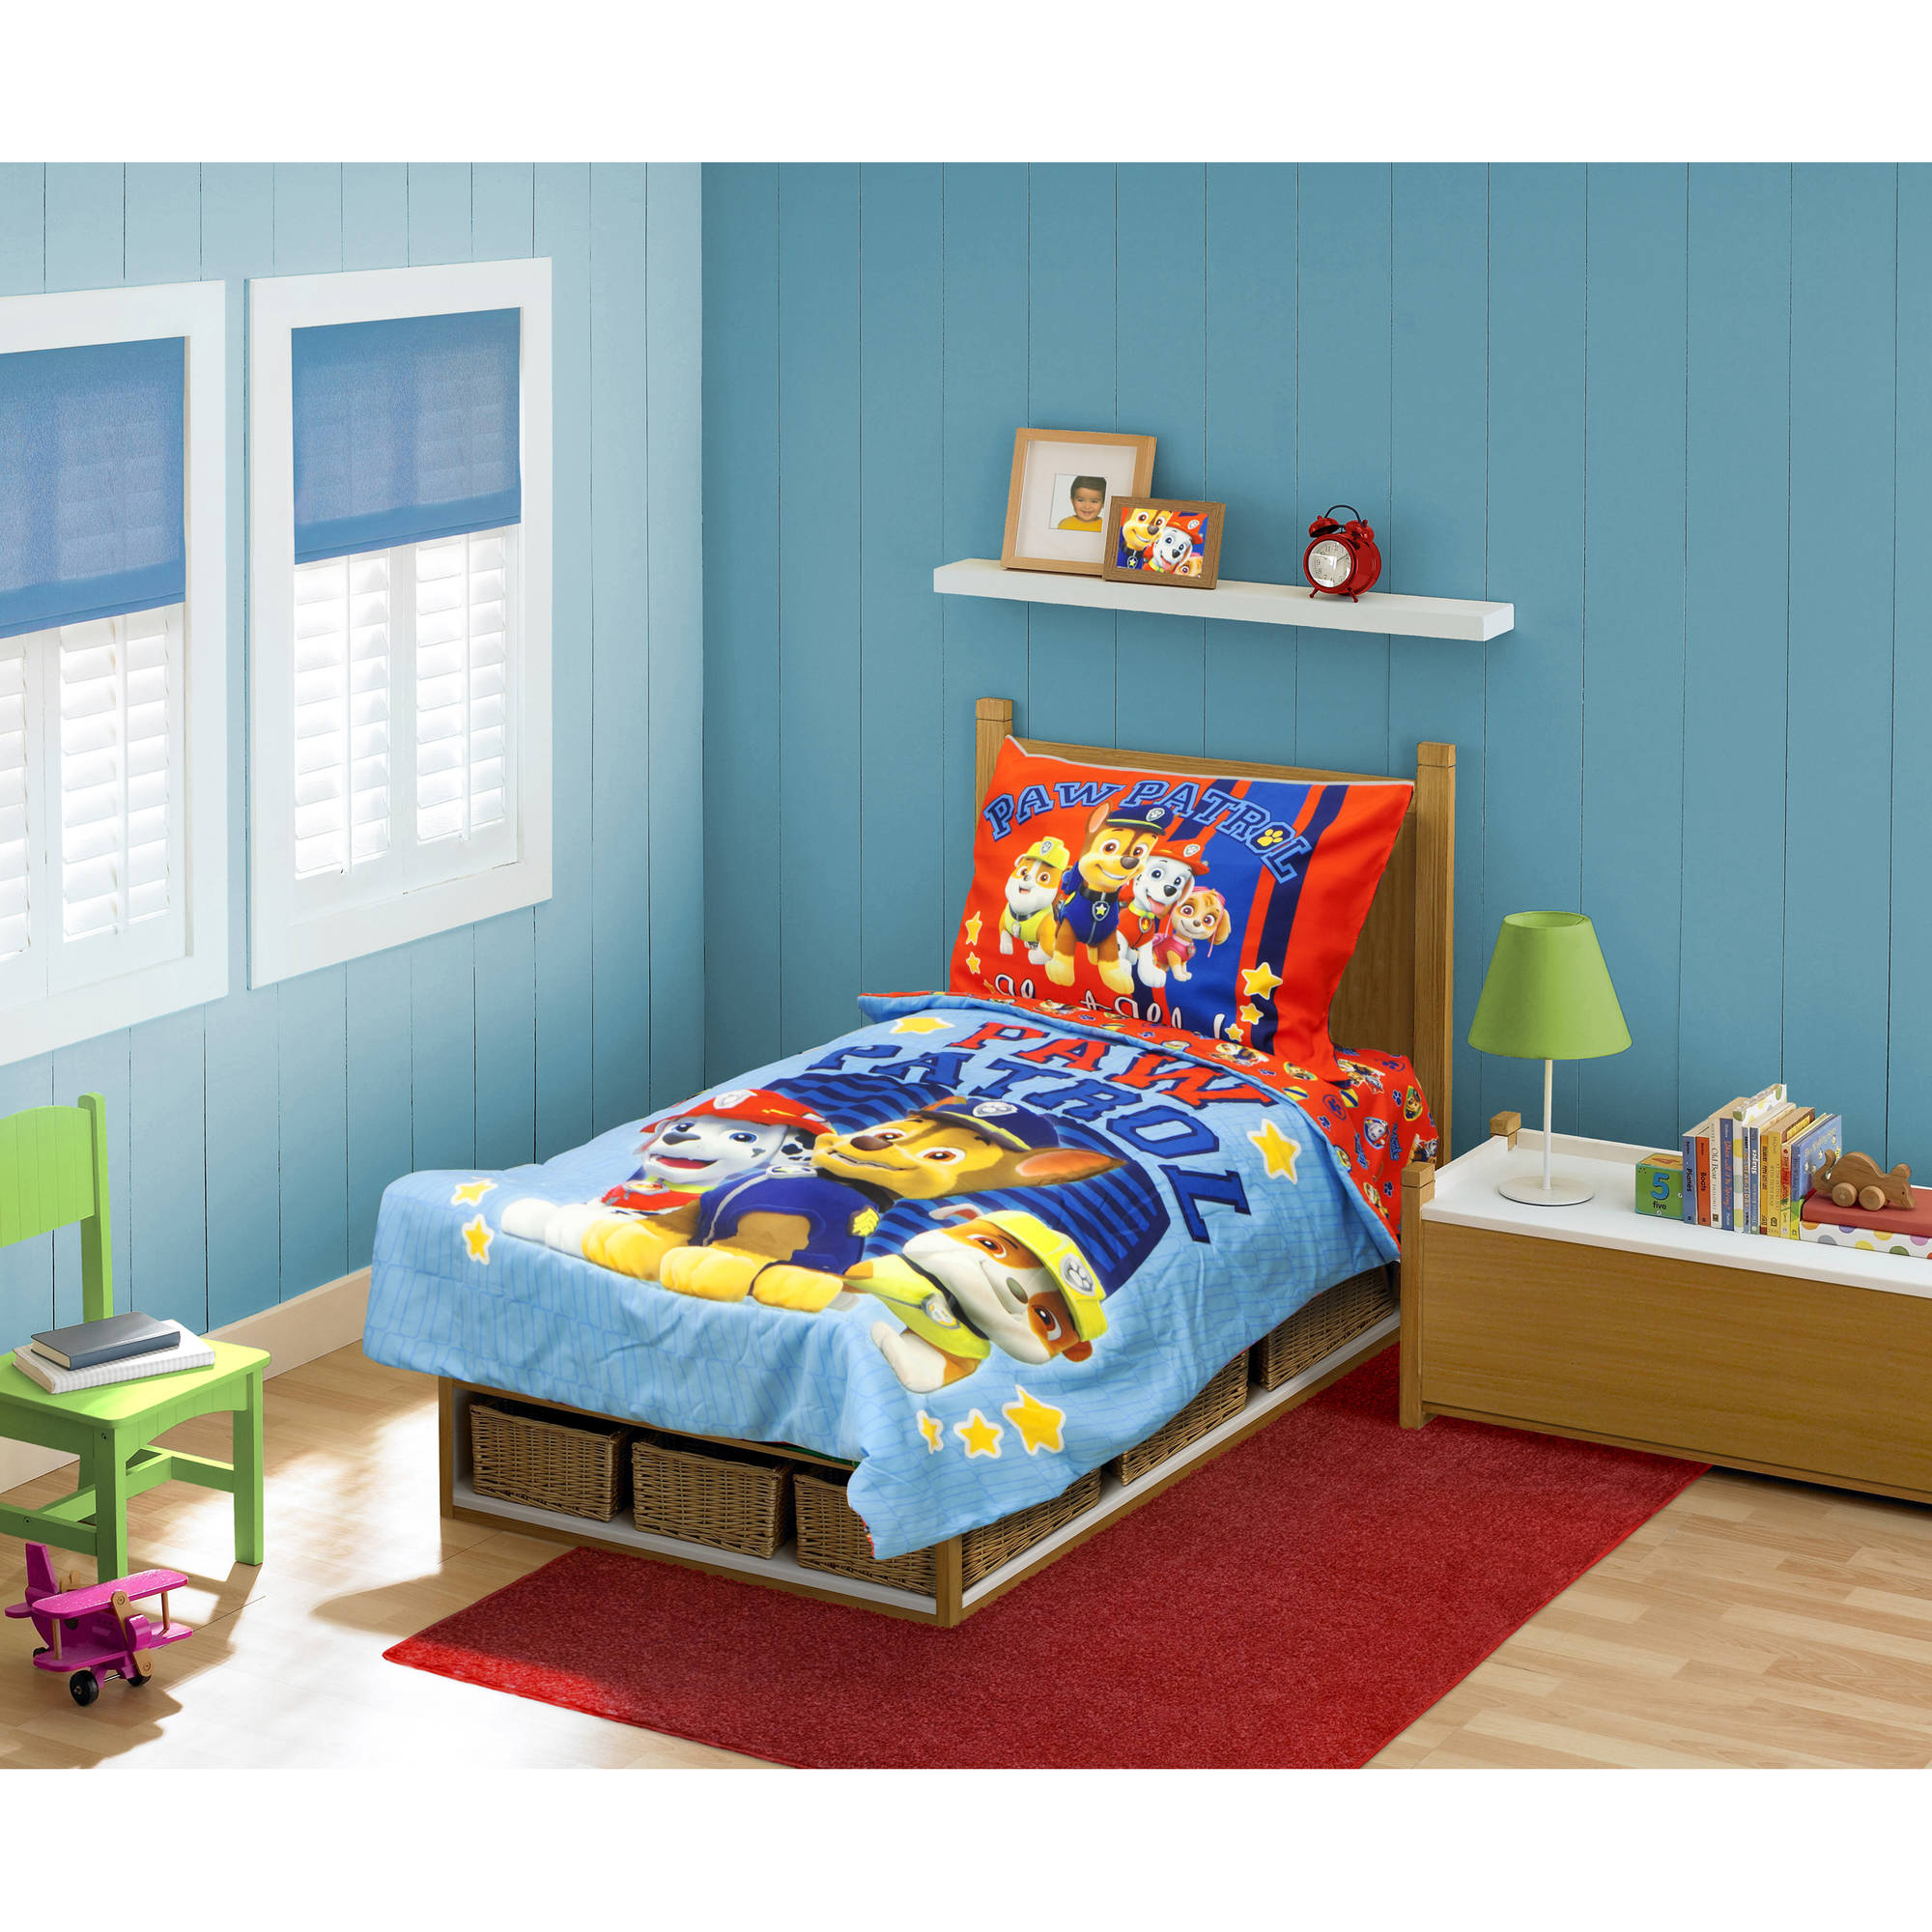 paw patrol bedroom babyboom nick jr paw patrol 4 toddler bedding set 12805